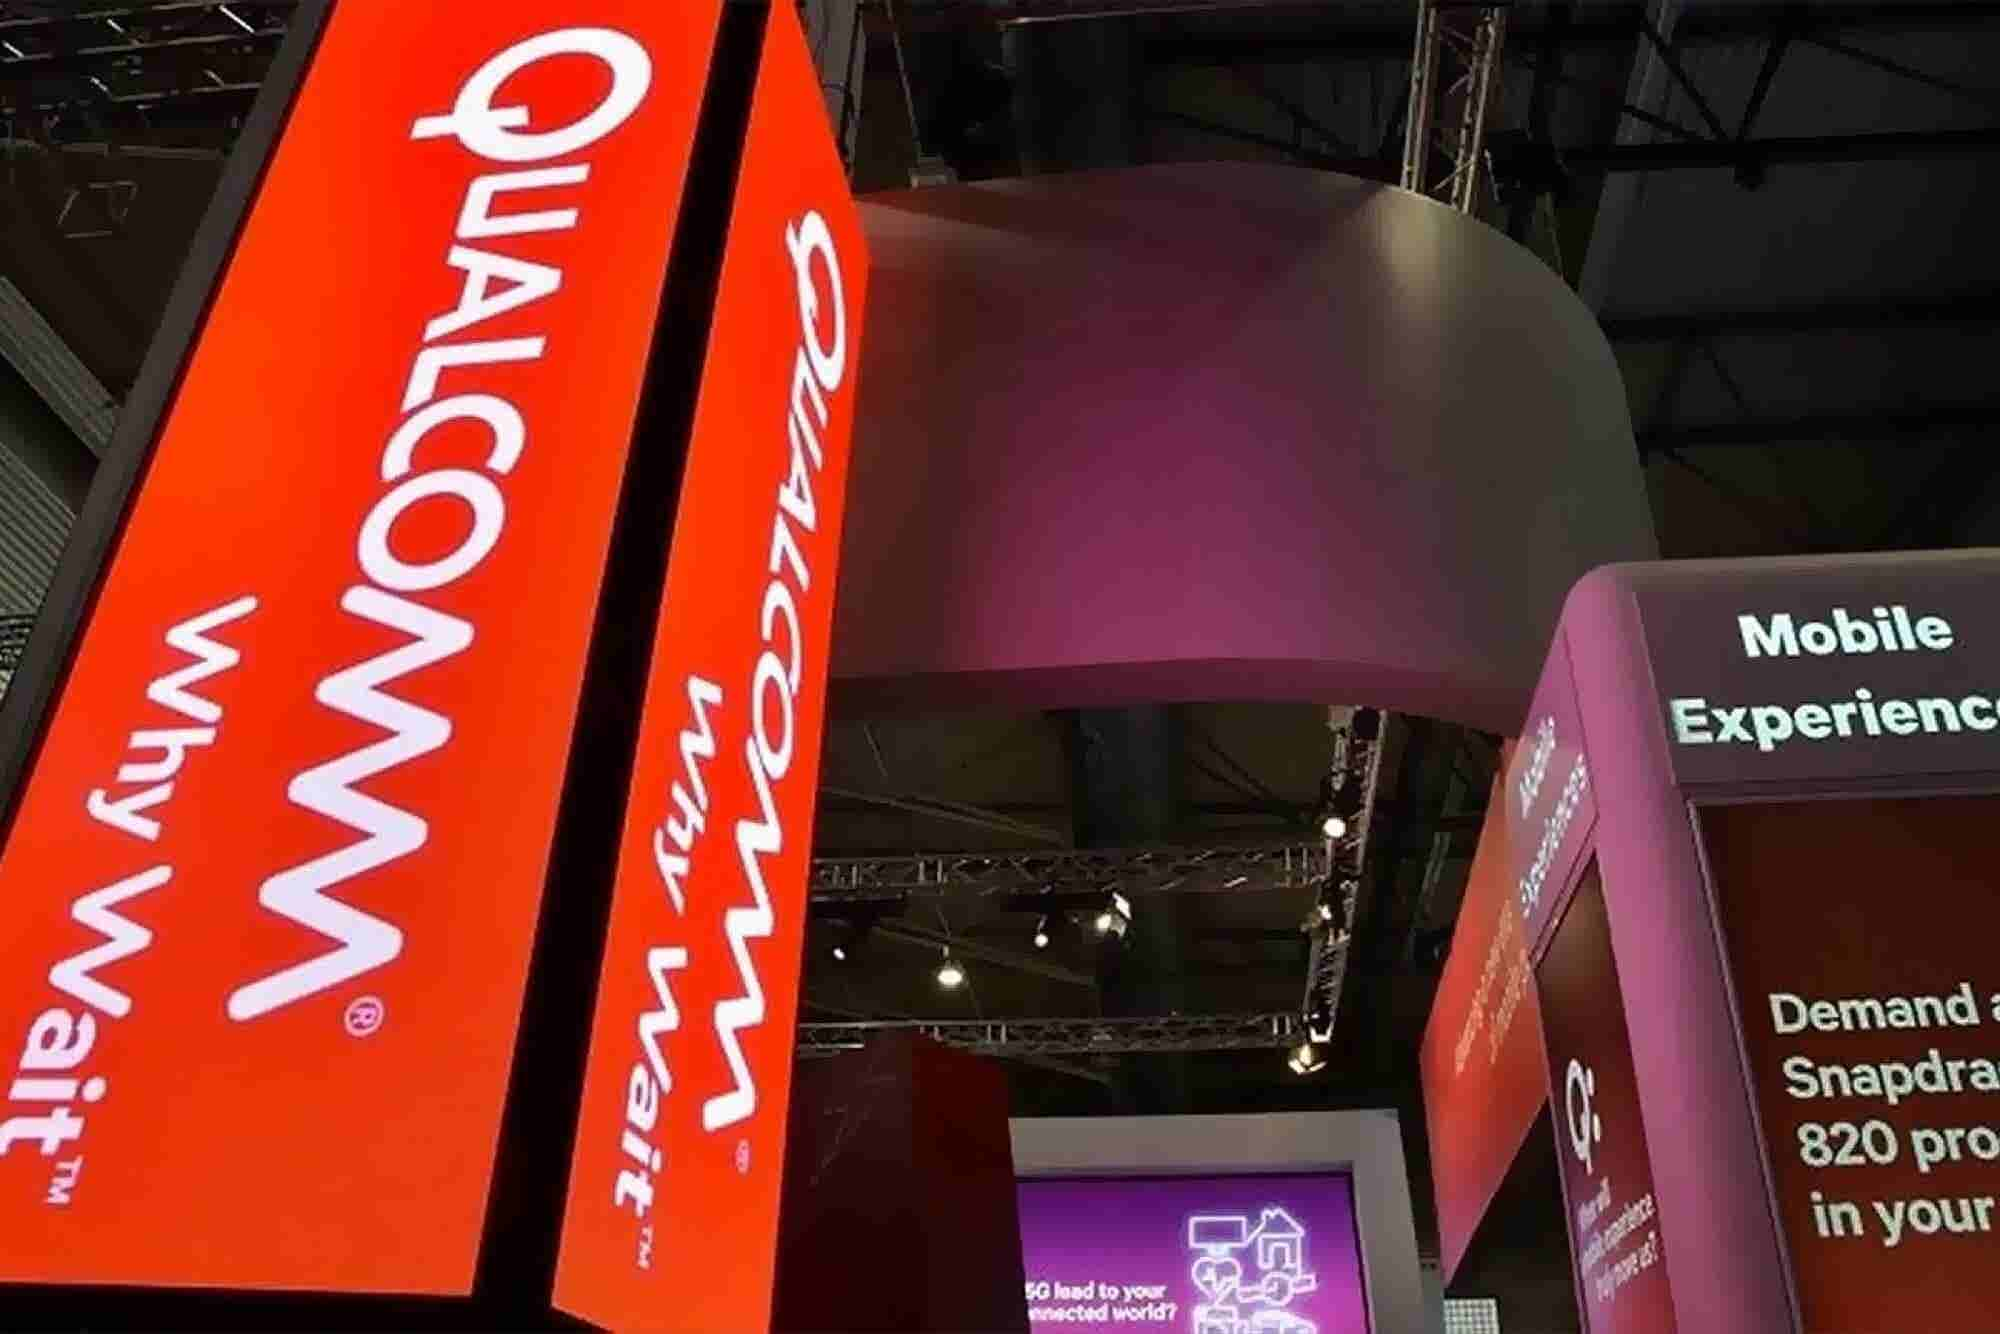 Qualcomm Must Refund BlackBerry $815 Million in Fees